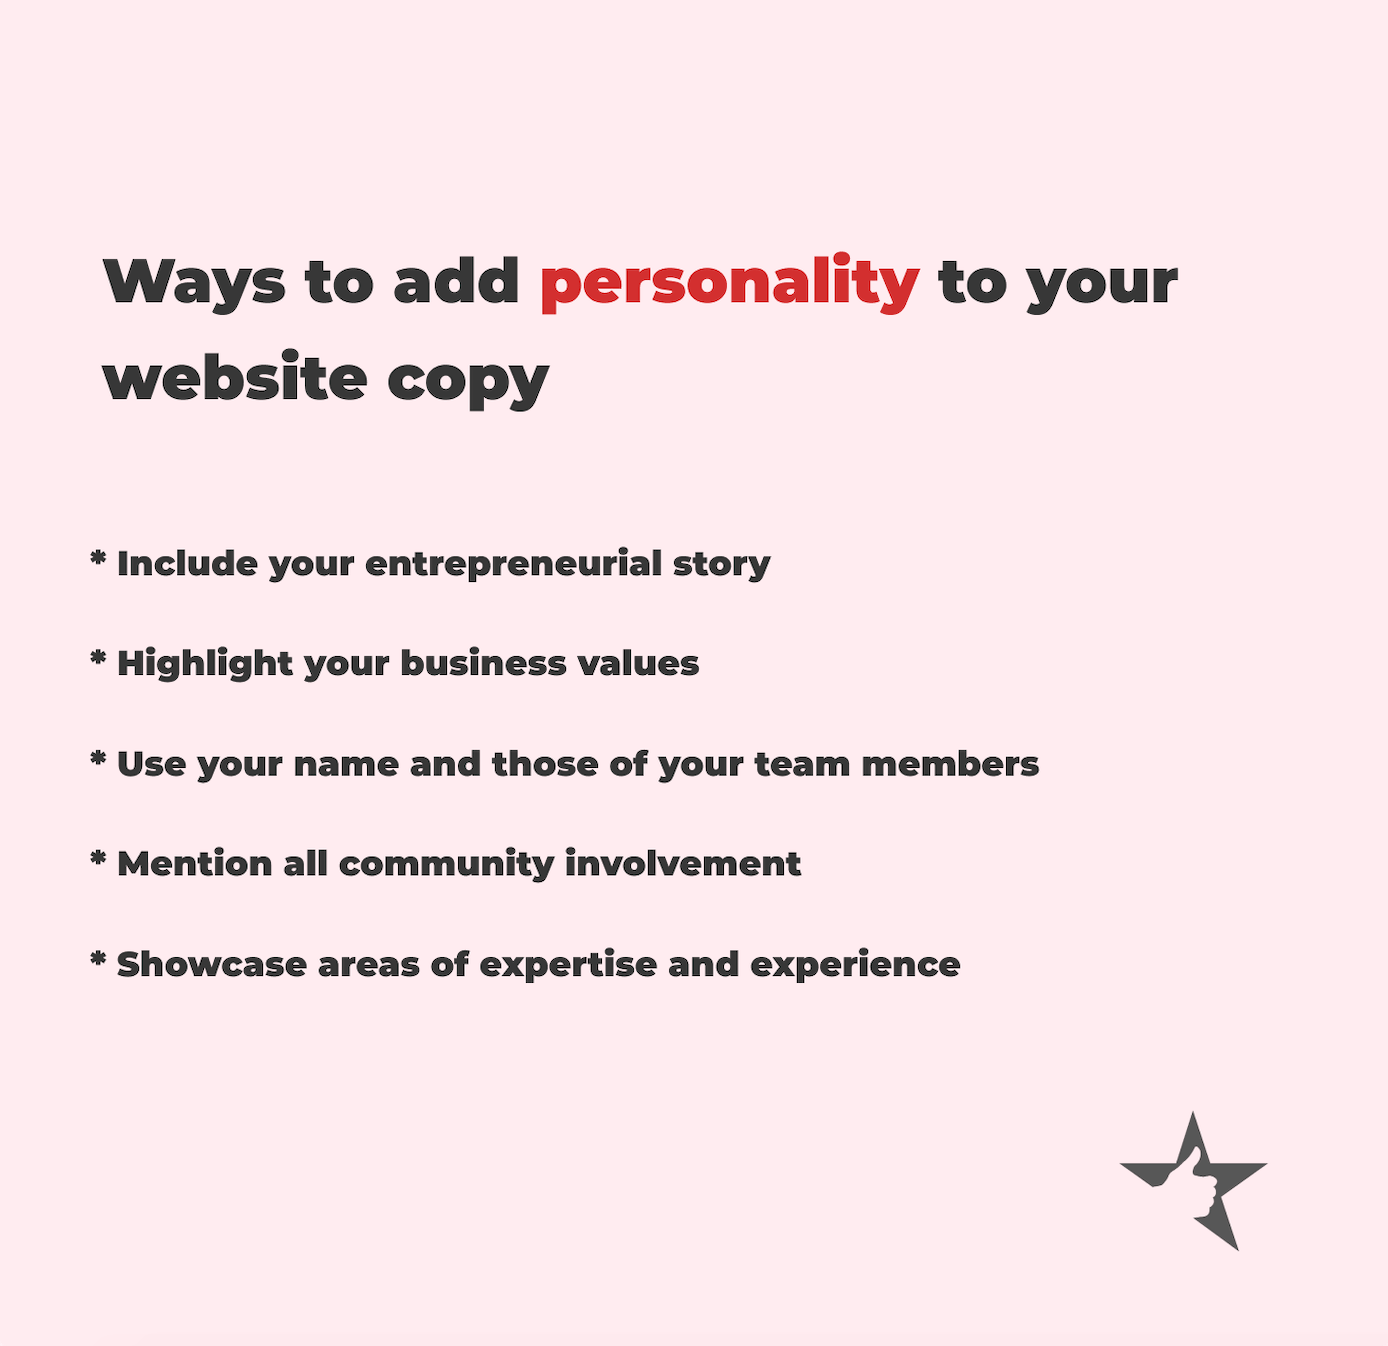 Graphic showing ways to add personality to website copy